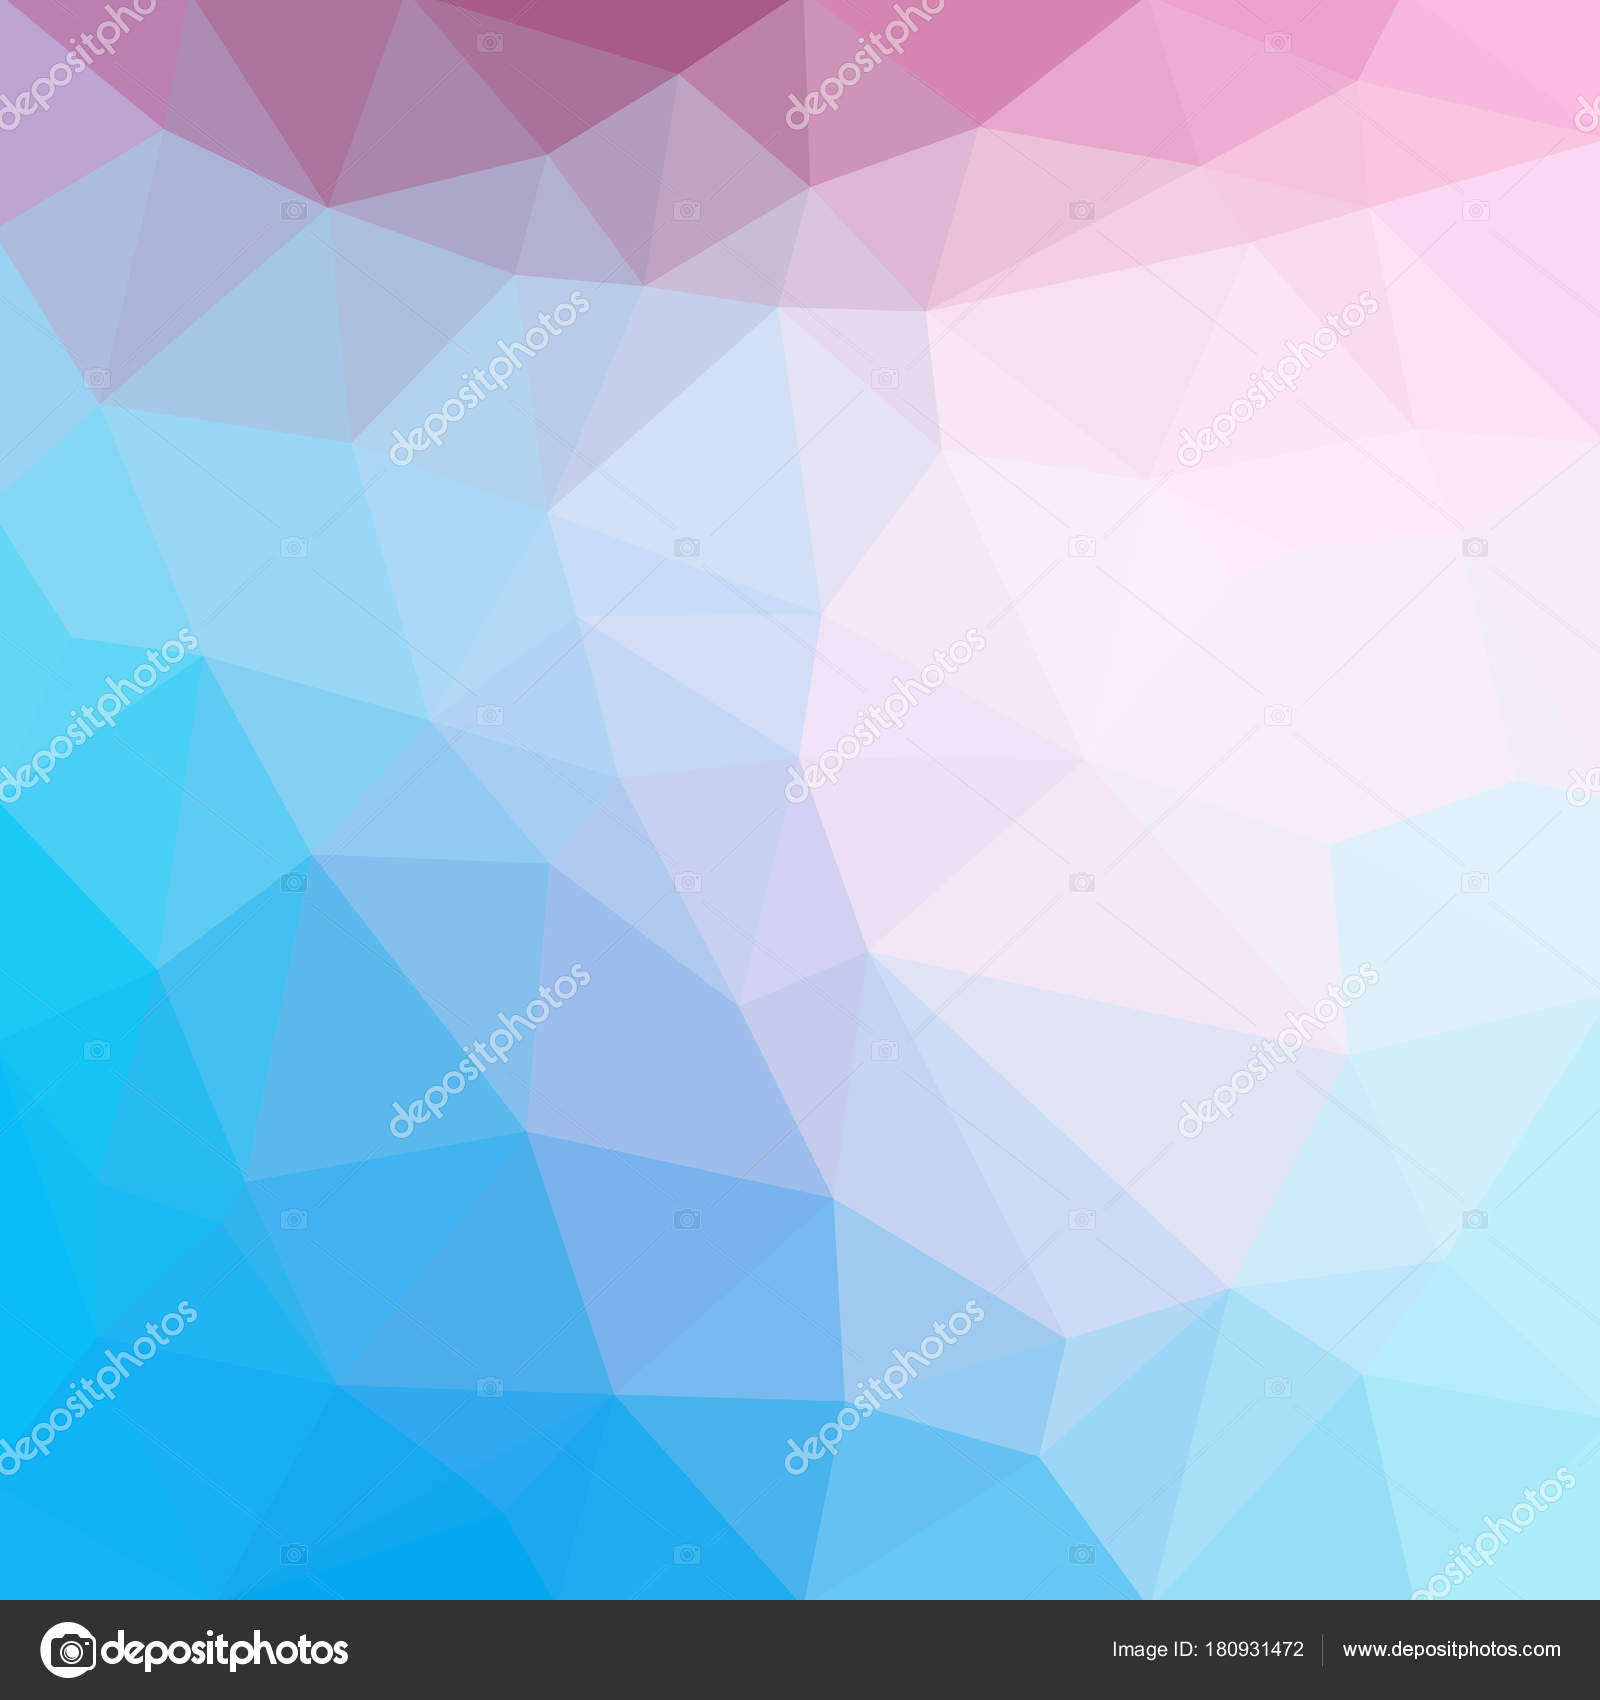 light blue cool vector low poly crystal background polygon design